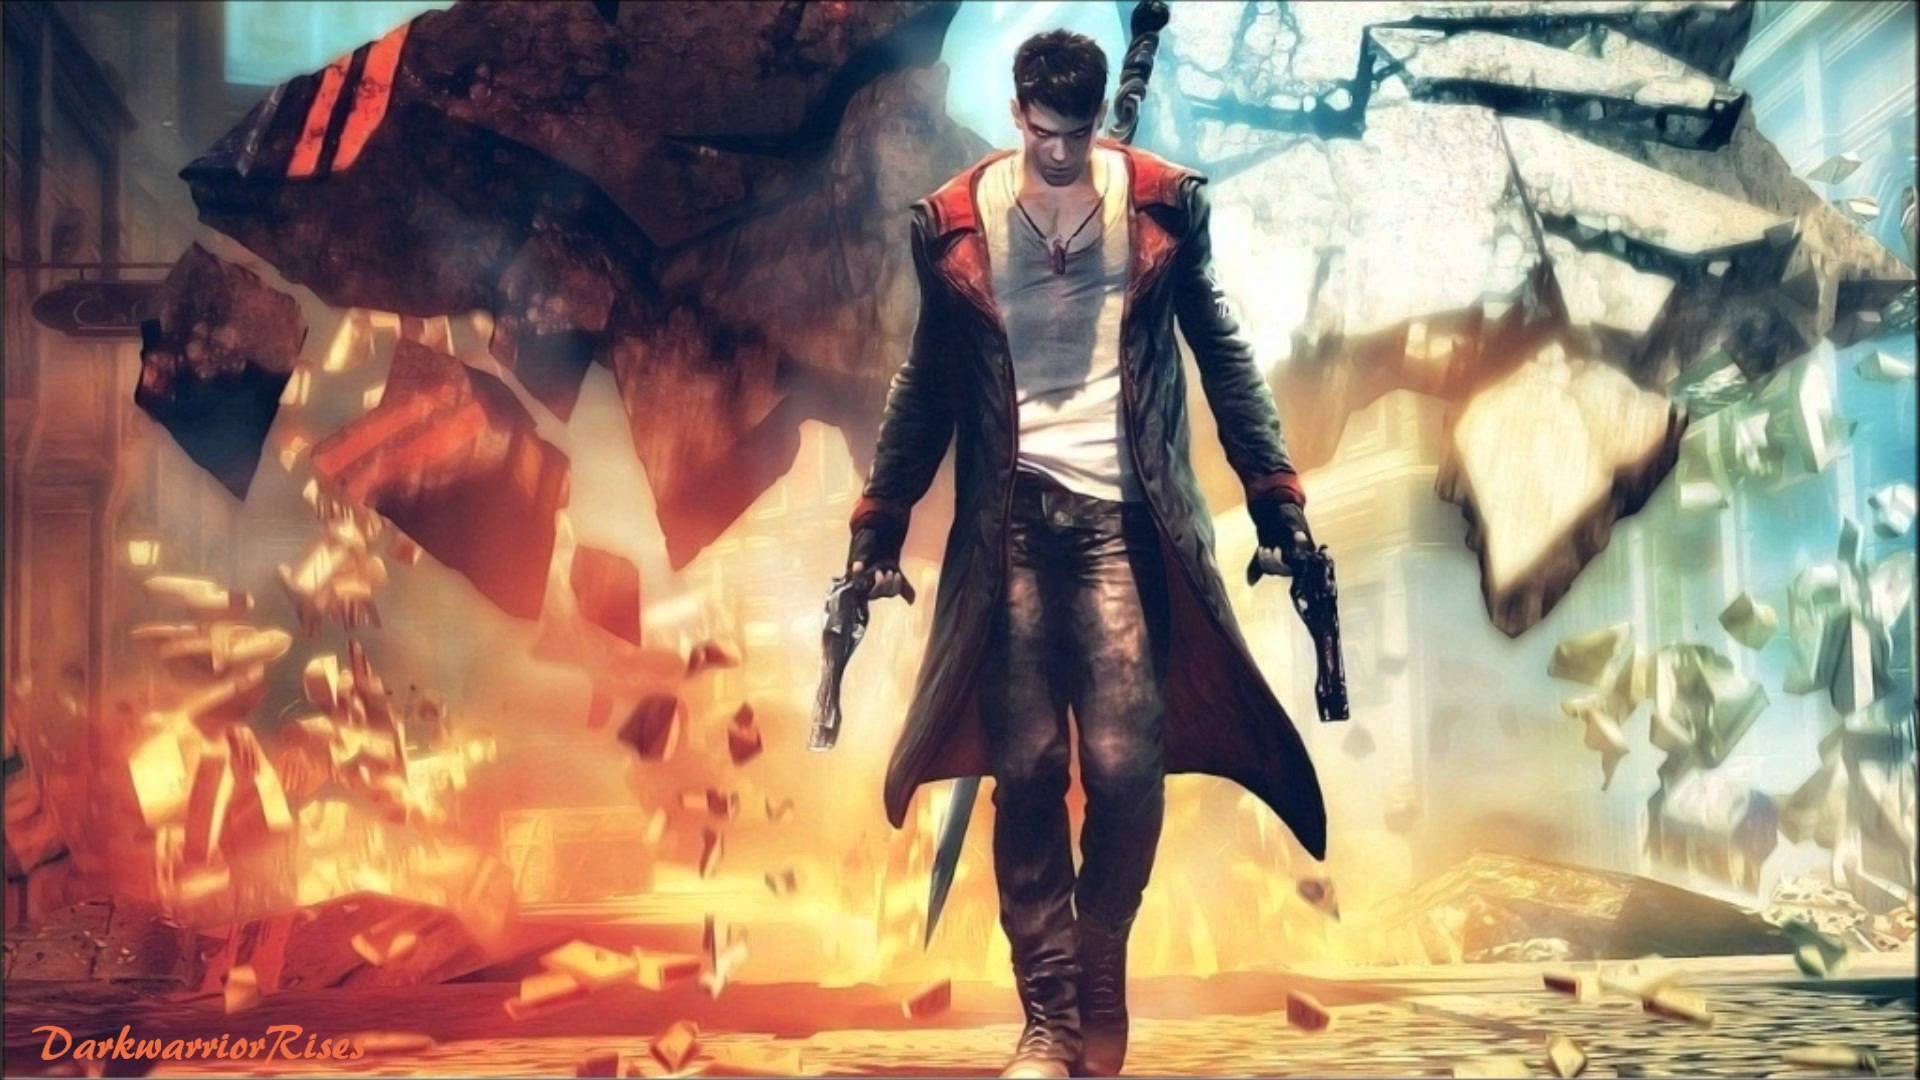 Pin By Lapis Safeiros On Found Music 2k15 V 5 Devil May Cry